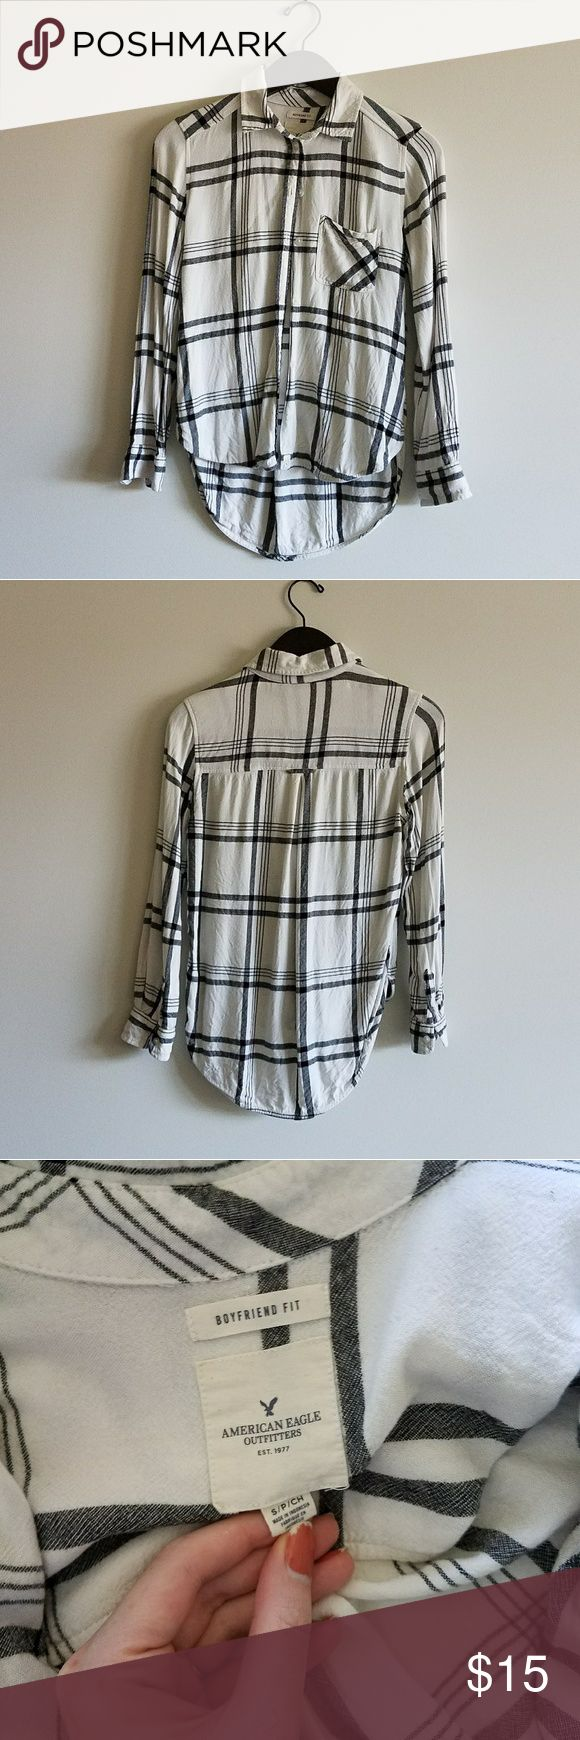 """Boyfriend Fit Plaid Very sad to sell this since it was my favorite shirt but it shrank in the wash and now it's too short for me. For reference I'm 5'7"""" with long arms and torso so it would work better on someone shorter than me. Will update with measurements. Very soft and cozy. American Eagle Outfitters Tops Button Down Shirts"""